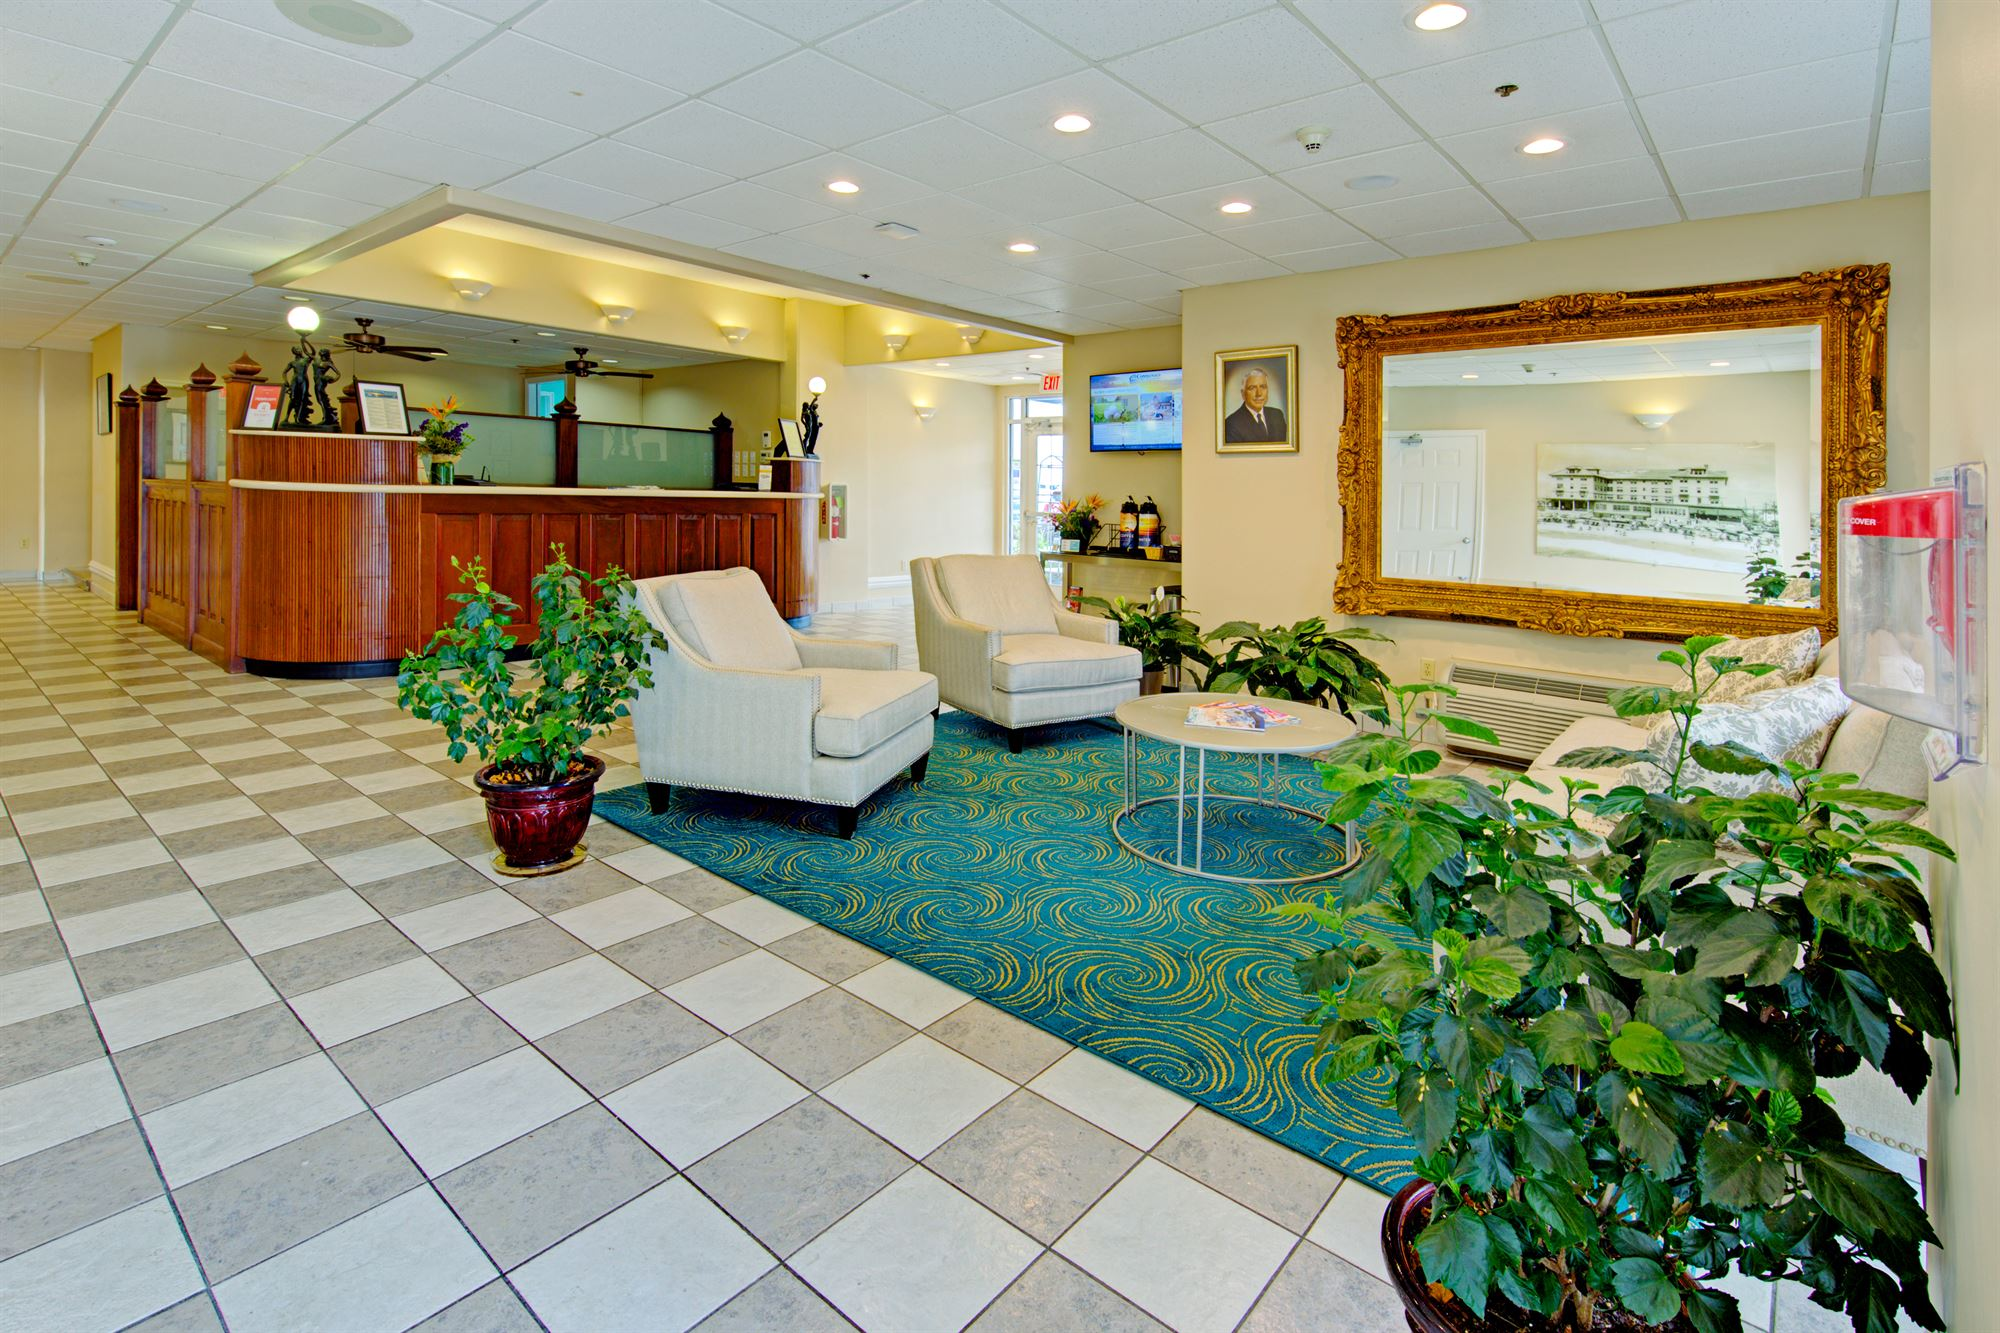 Lobby of the Commander Hotel in Ocean City, Maryland.